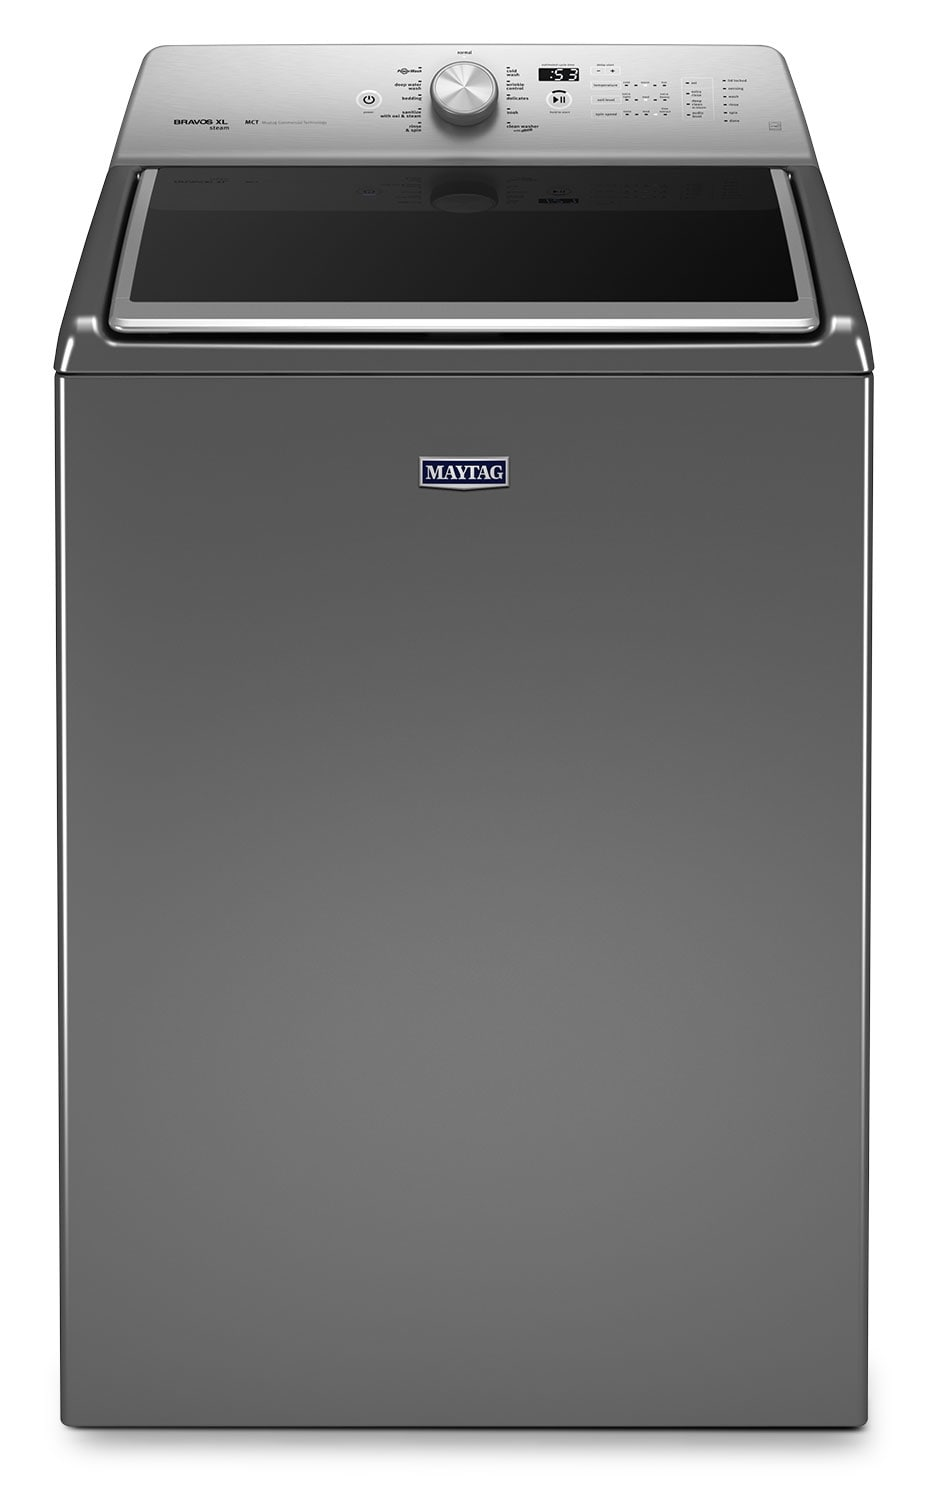 Washers and Dryers - Maytag 6.1 Cu. Ft. Top-Loading Washer – MVWB855DC